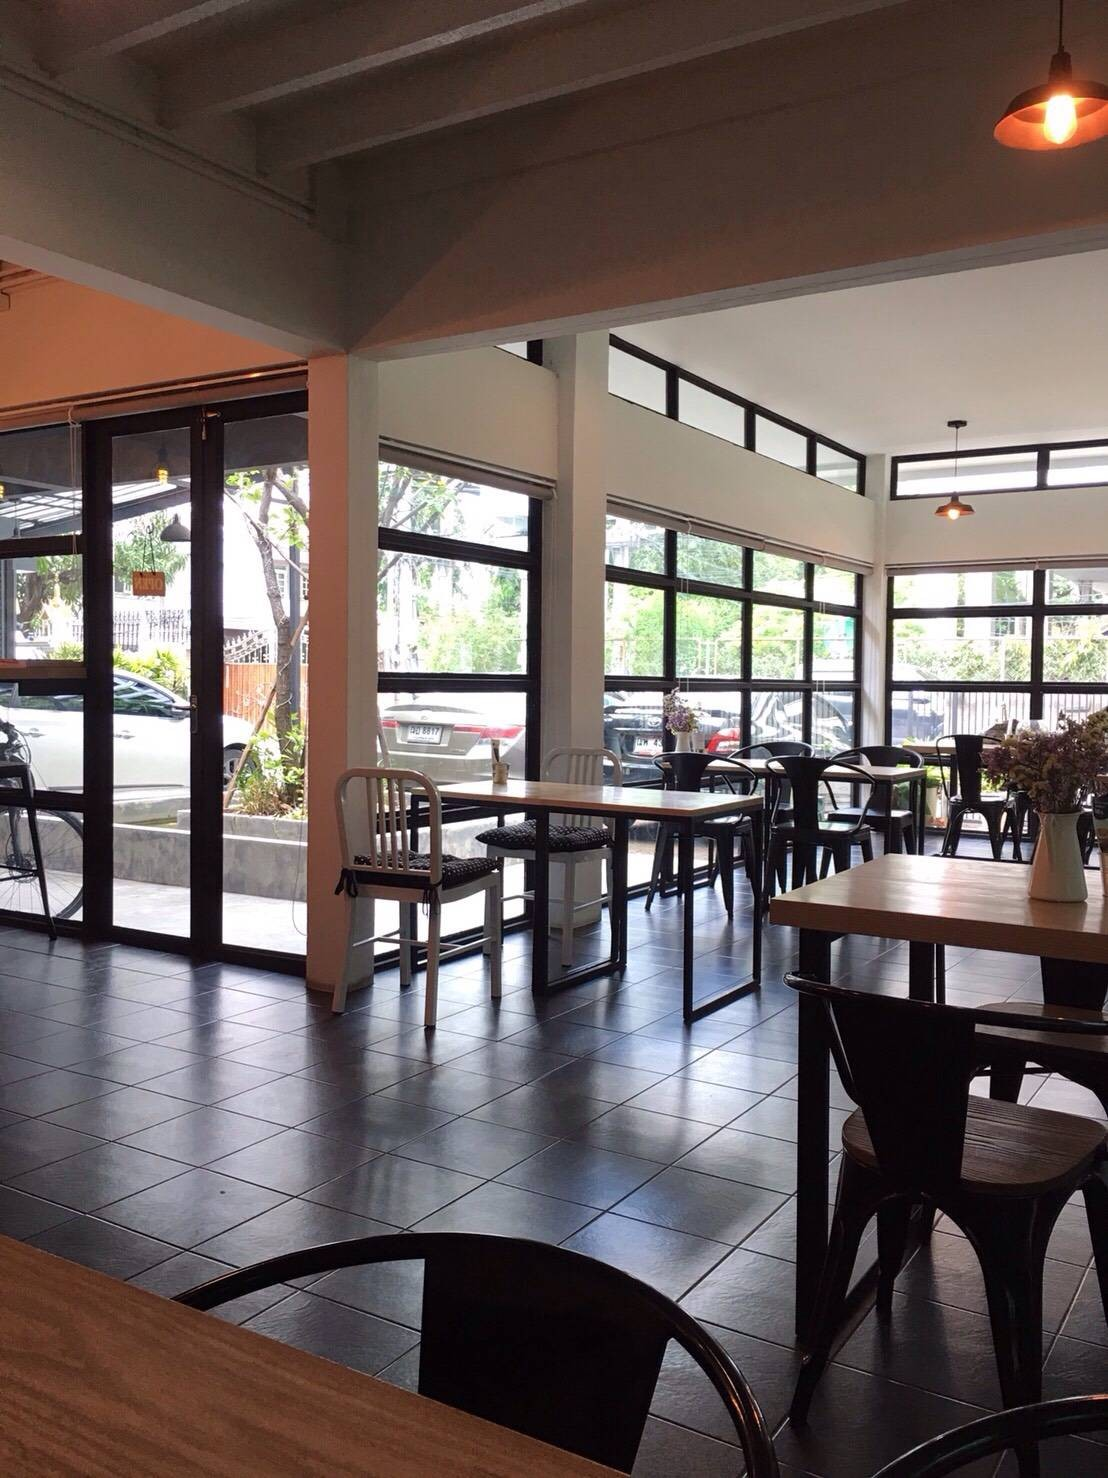 Ease Cafe&CoWorking Space